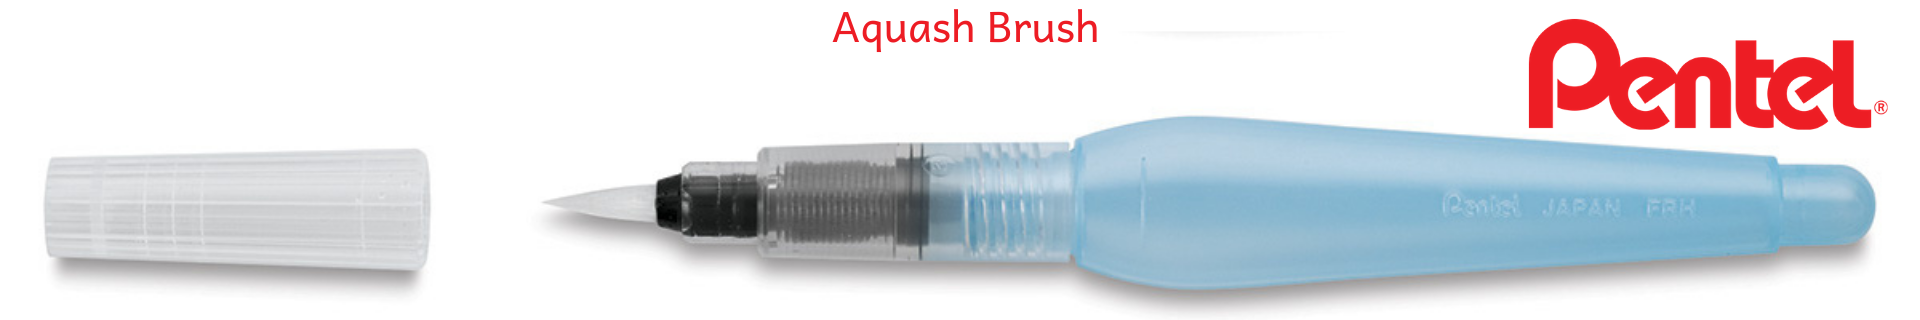 Pentel Aquash Brush